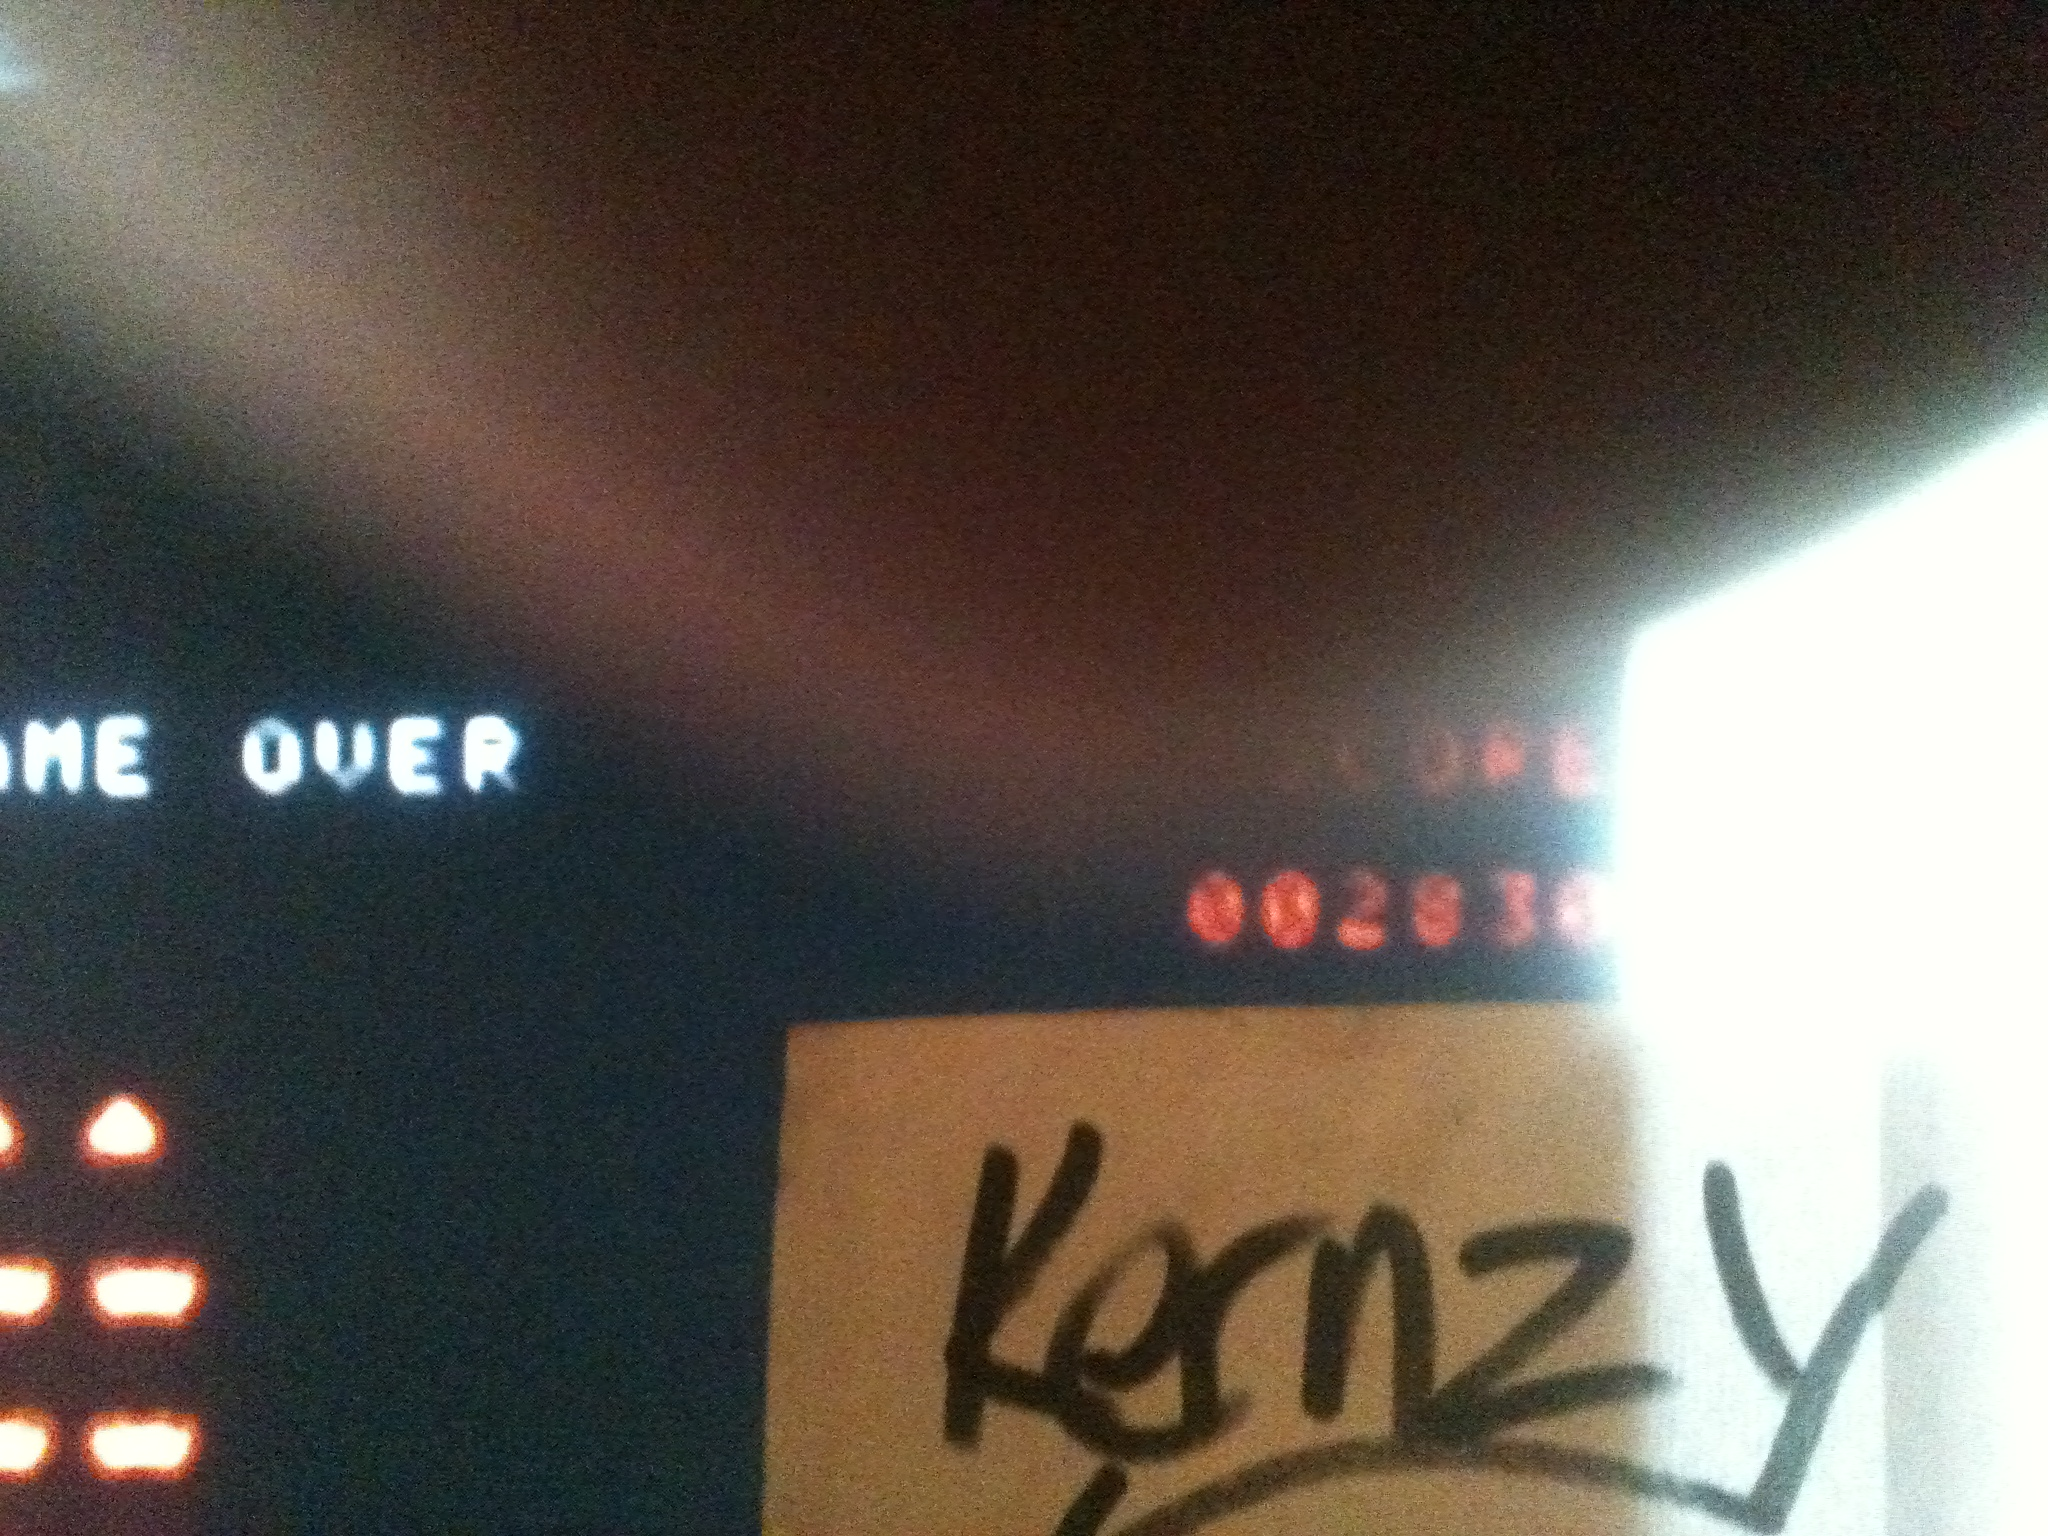 kernzy: Space Invaders: Fukkatsu no Hi [Classic Mode] (TurboGrafx-16/PC Engine Emulated) 2,830 points on 2014-11-24 12:51:27